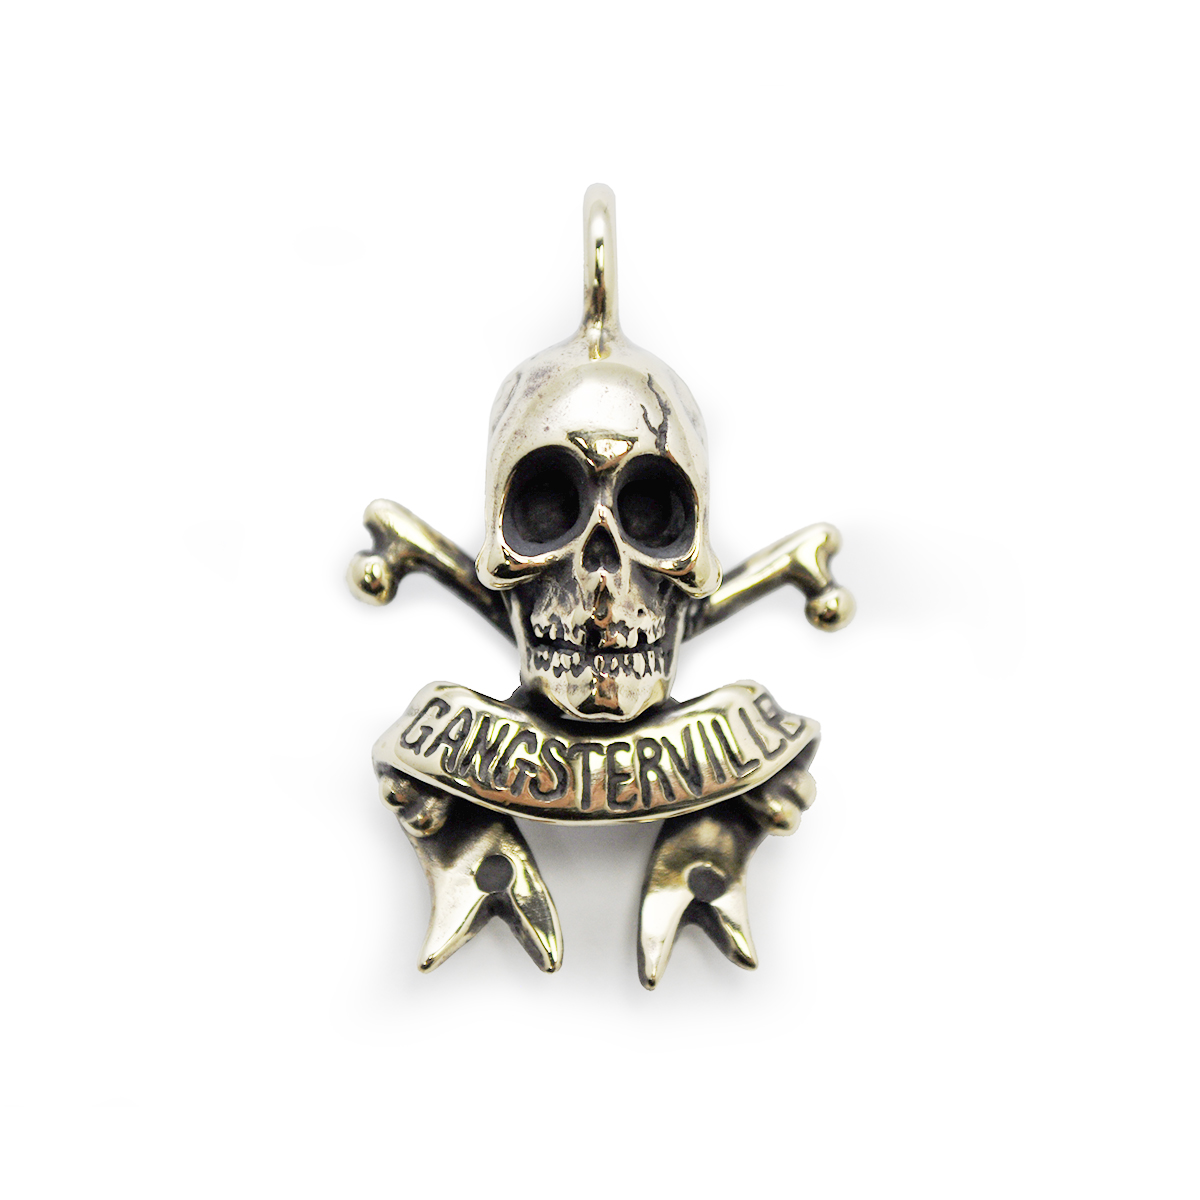 GANGSTERVILLE x galcia PENDANT - TOP